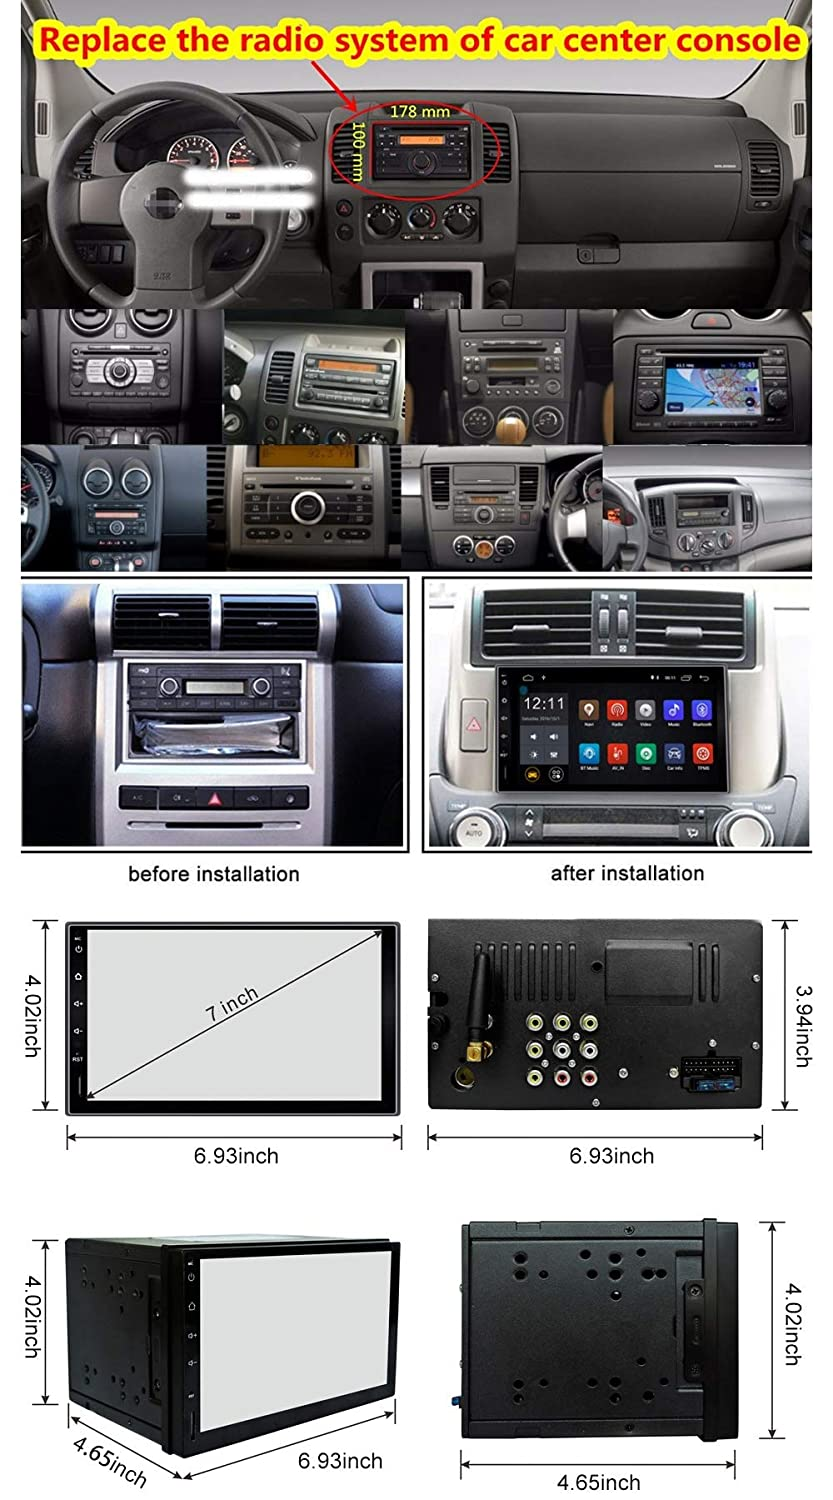 16G NAND Memory Flash CT0010 /… Rhythm Electronics Limited Ezonetronics Android 6.0 2 Din Car Radio Stereo Double Din 7 inch Capacitive Touch Screen High Definition 1024x600 GPS Navigation USB SD Player 2G DDR3